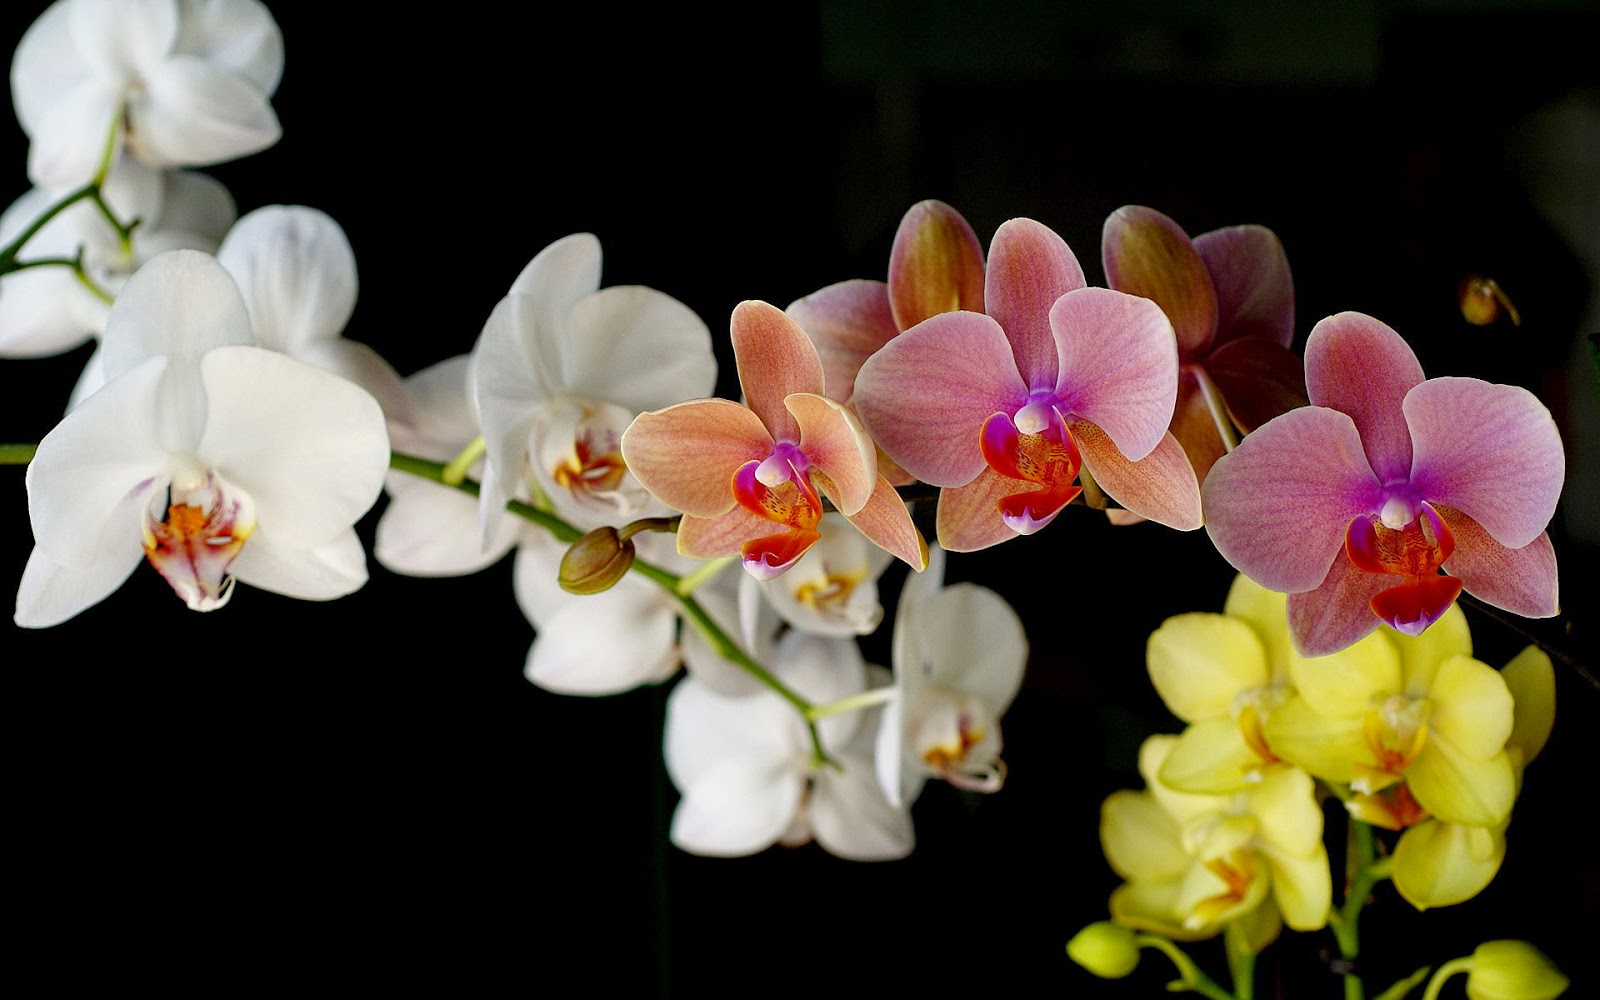 Many-color-Orchid-flower-black-background-wallpaper.jpg